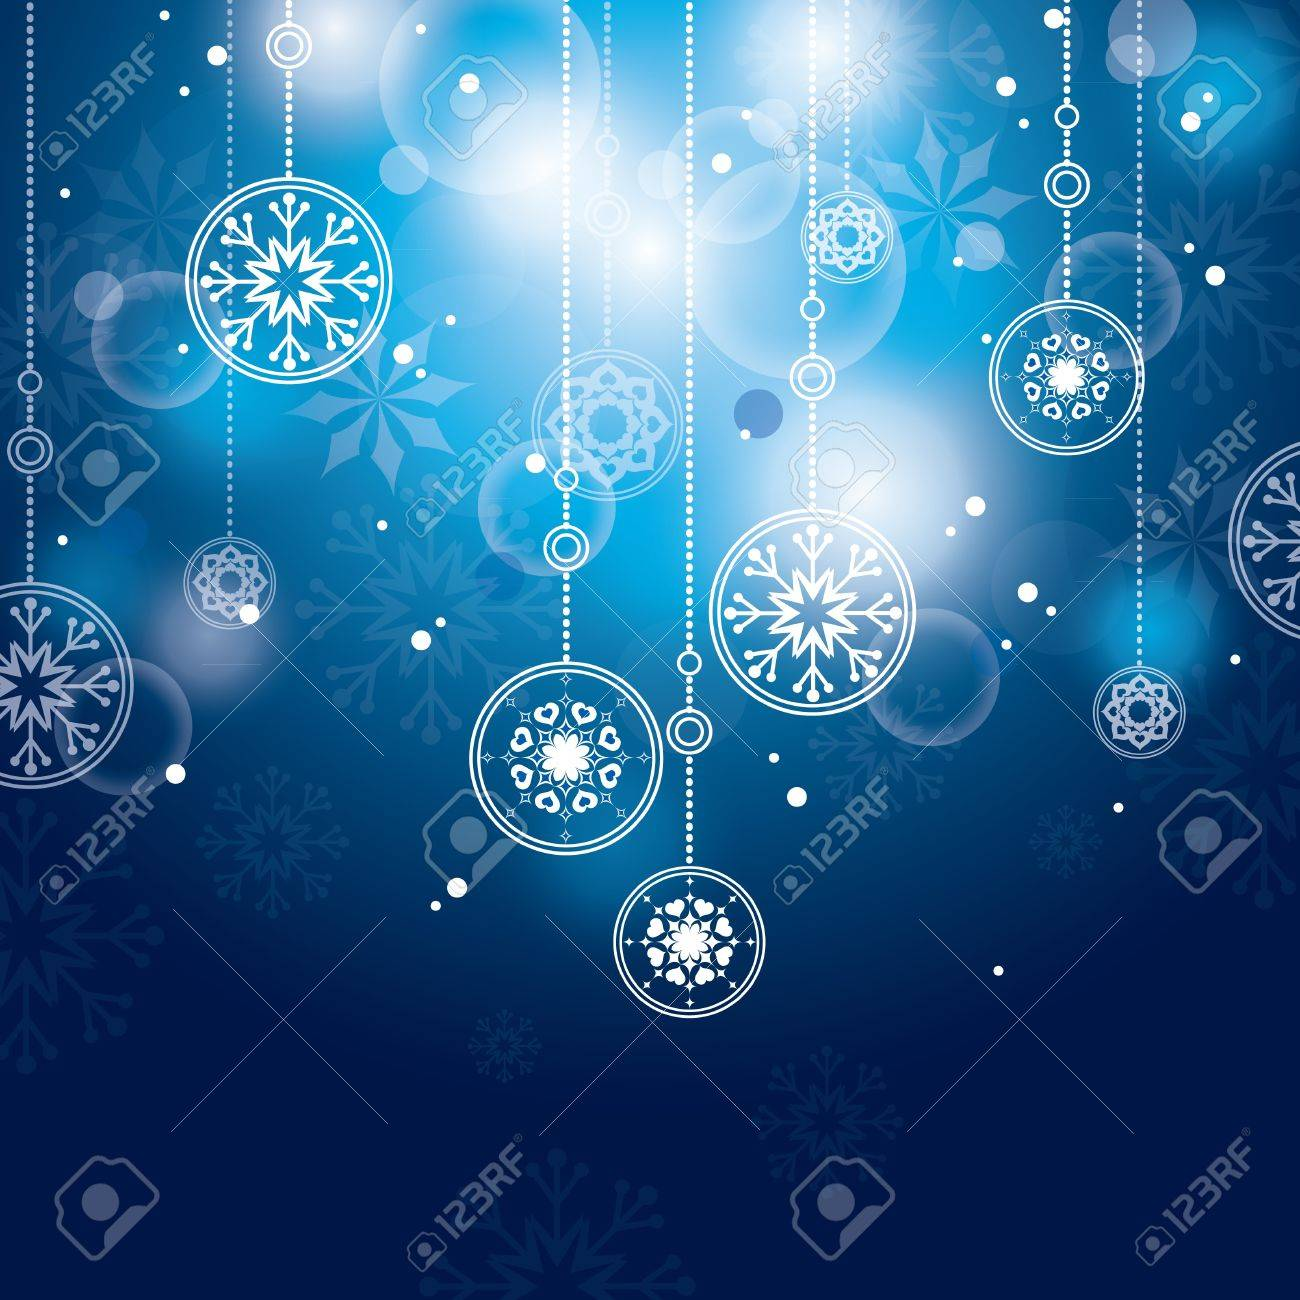 Christmas Background  Abstract Illustration Stock Vector - 15035788